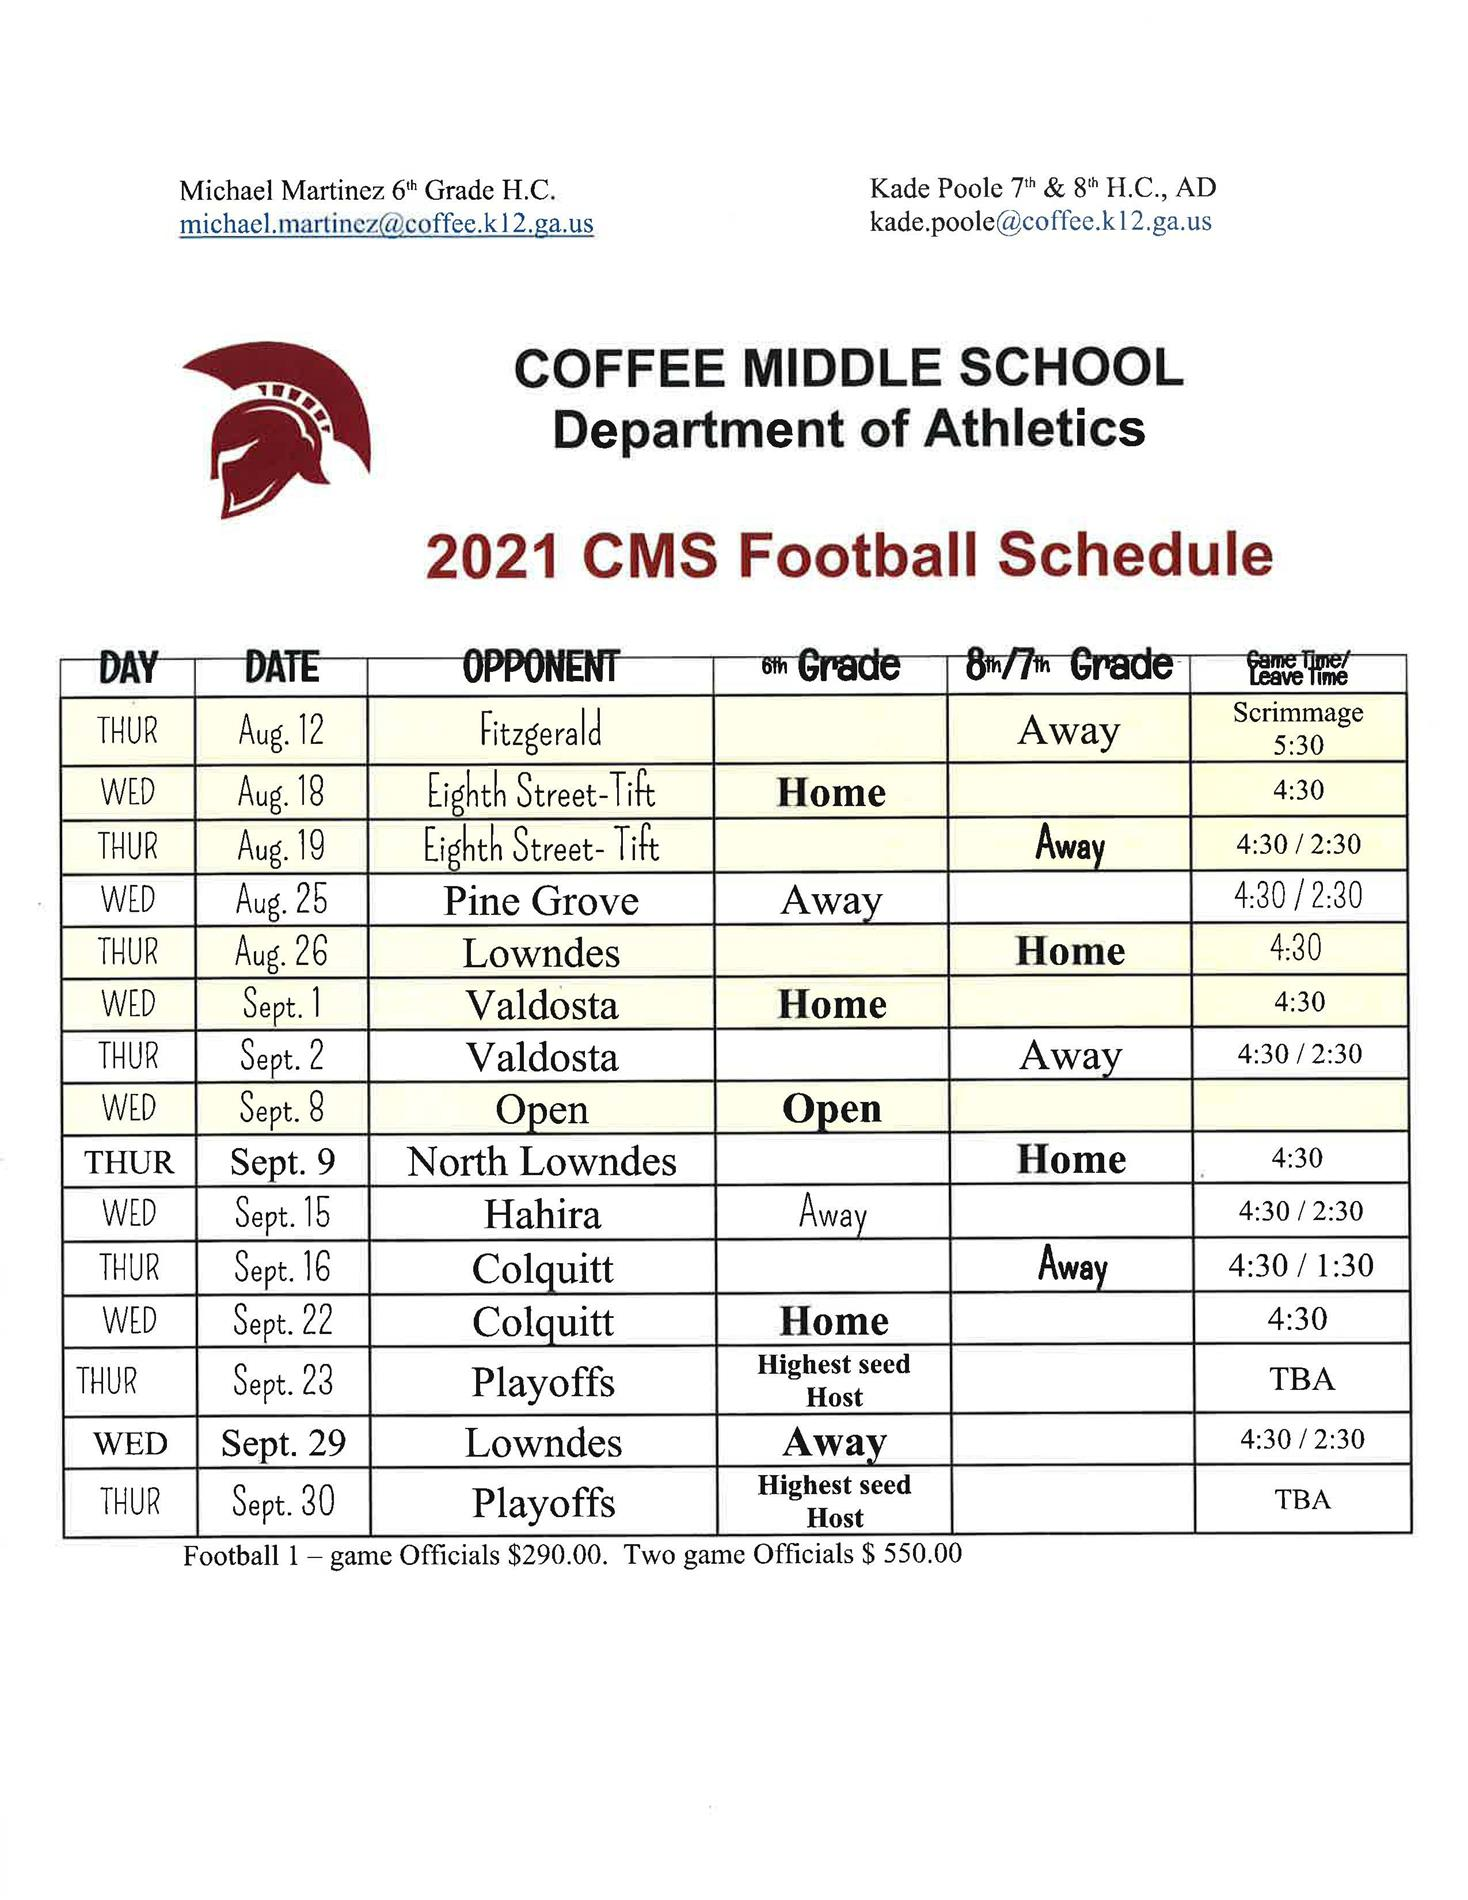 2021 Coffee Middle School Football Schedule